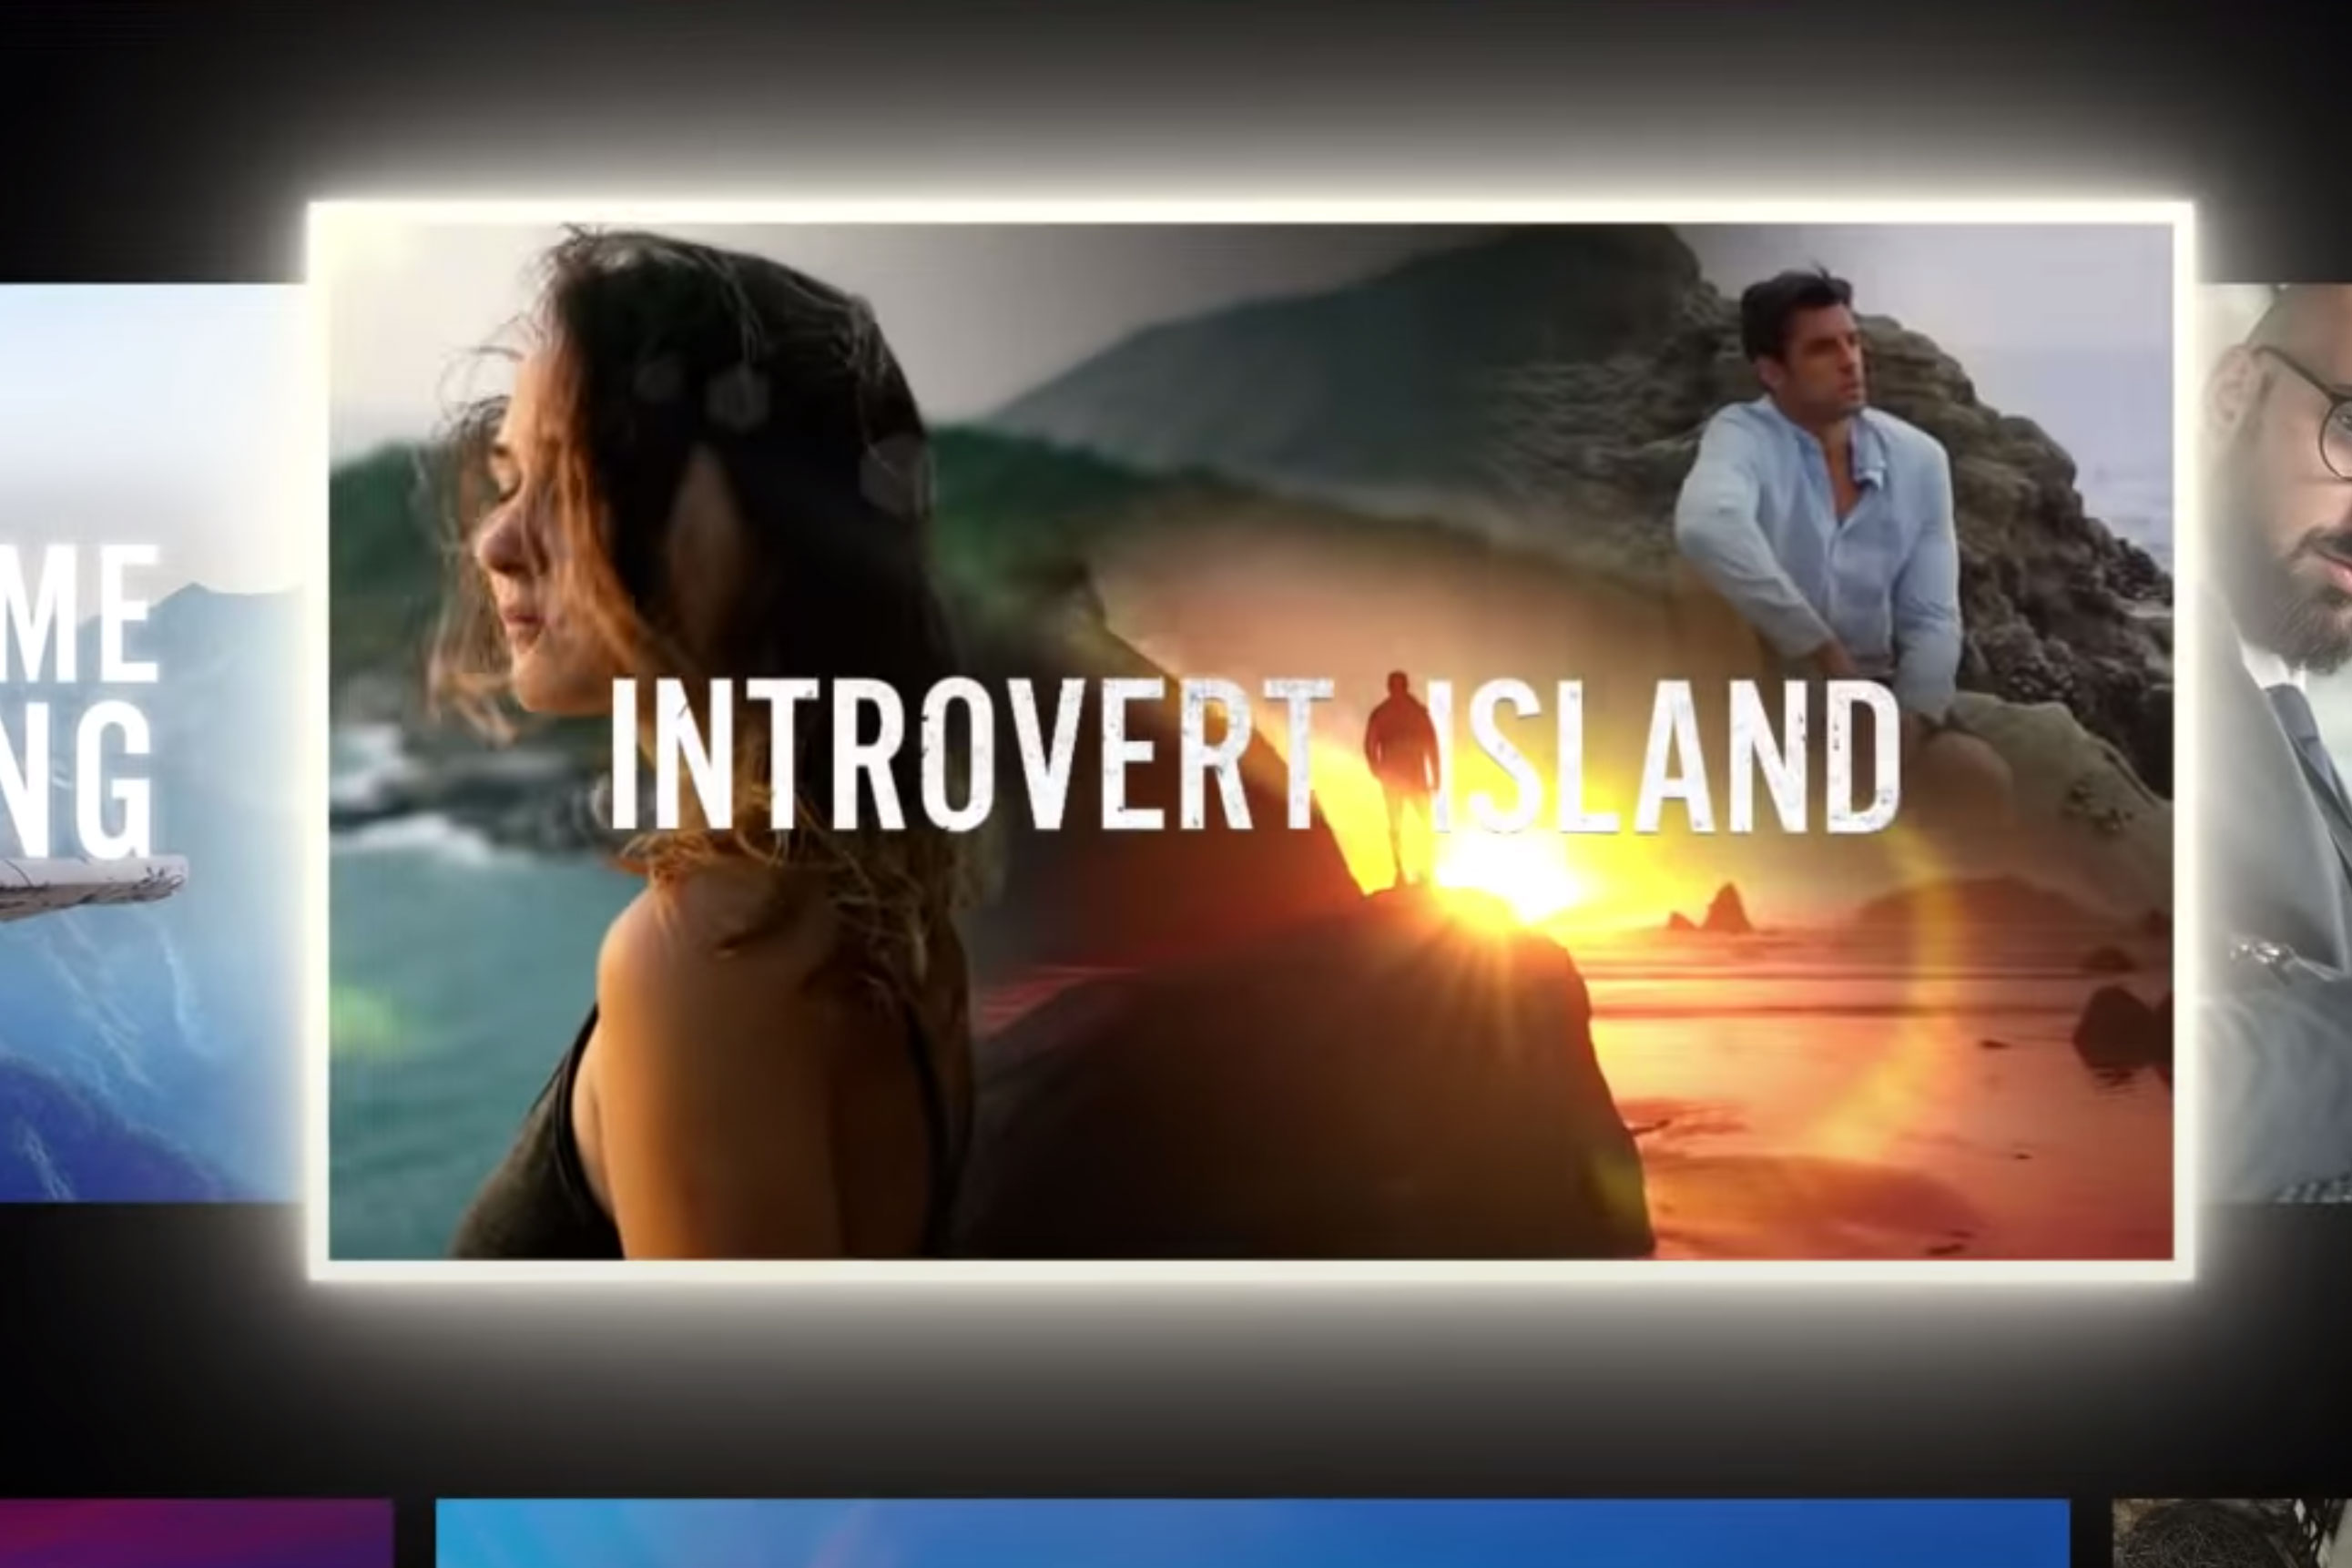 Reality show 'Introvert Island' goes viral (kinda), Starbucks TV advertising surges, and more: Datacenter Weekly